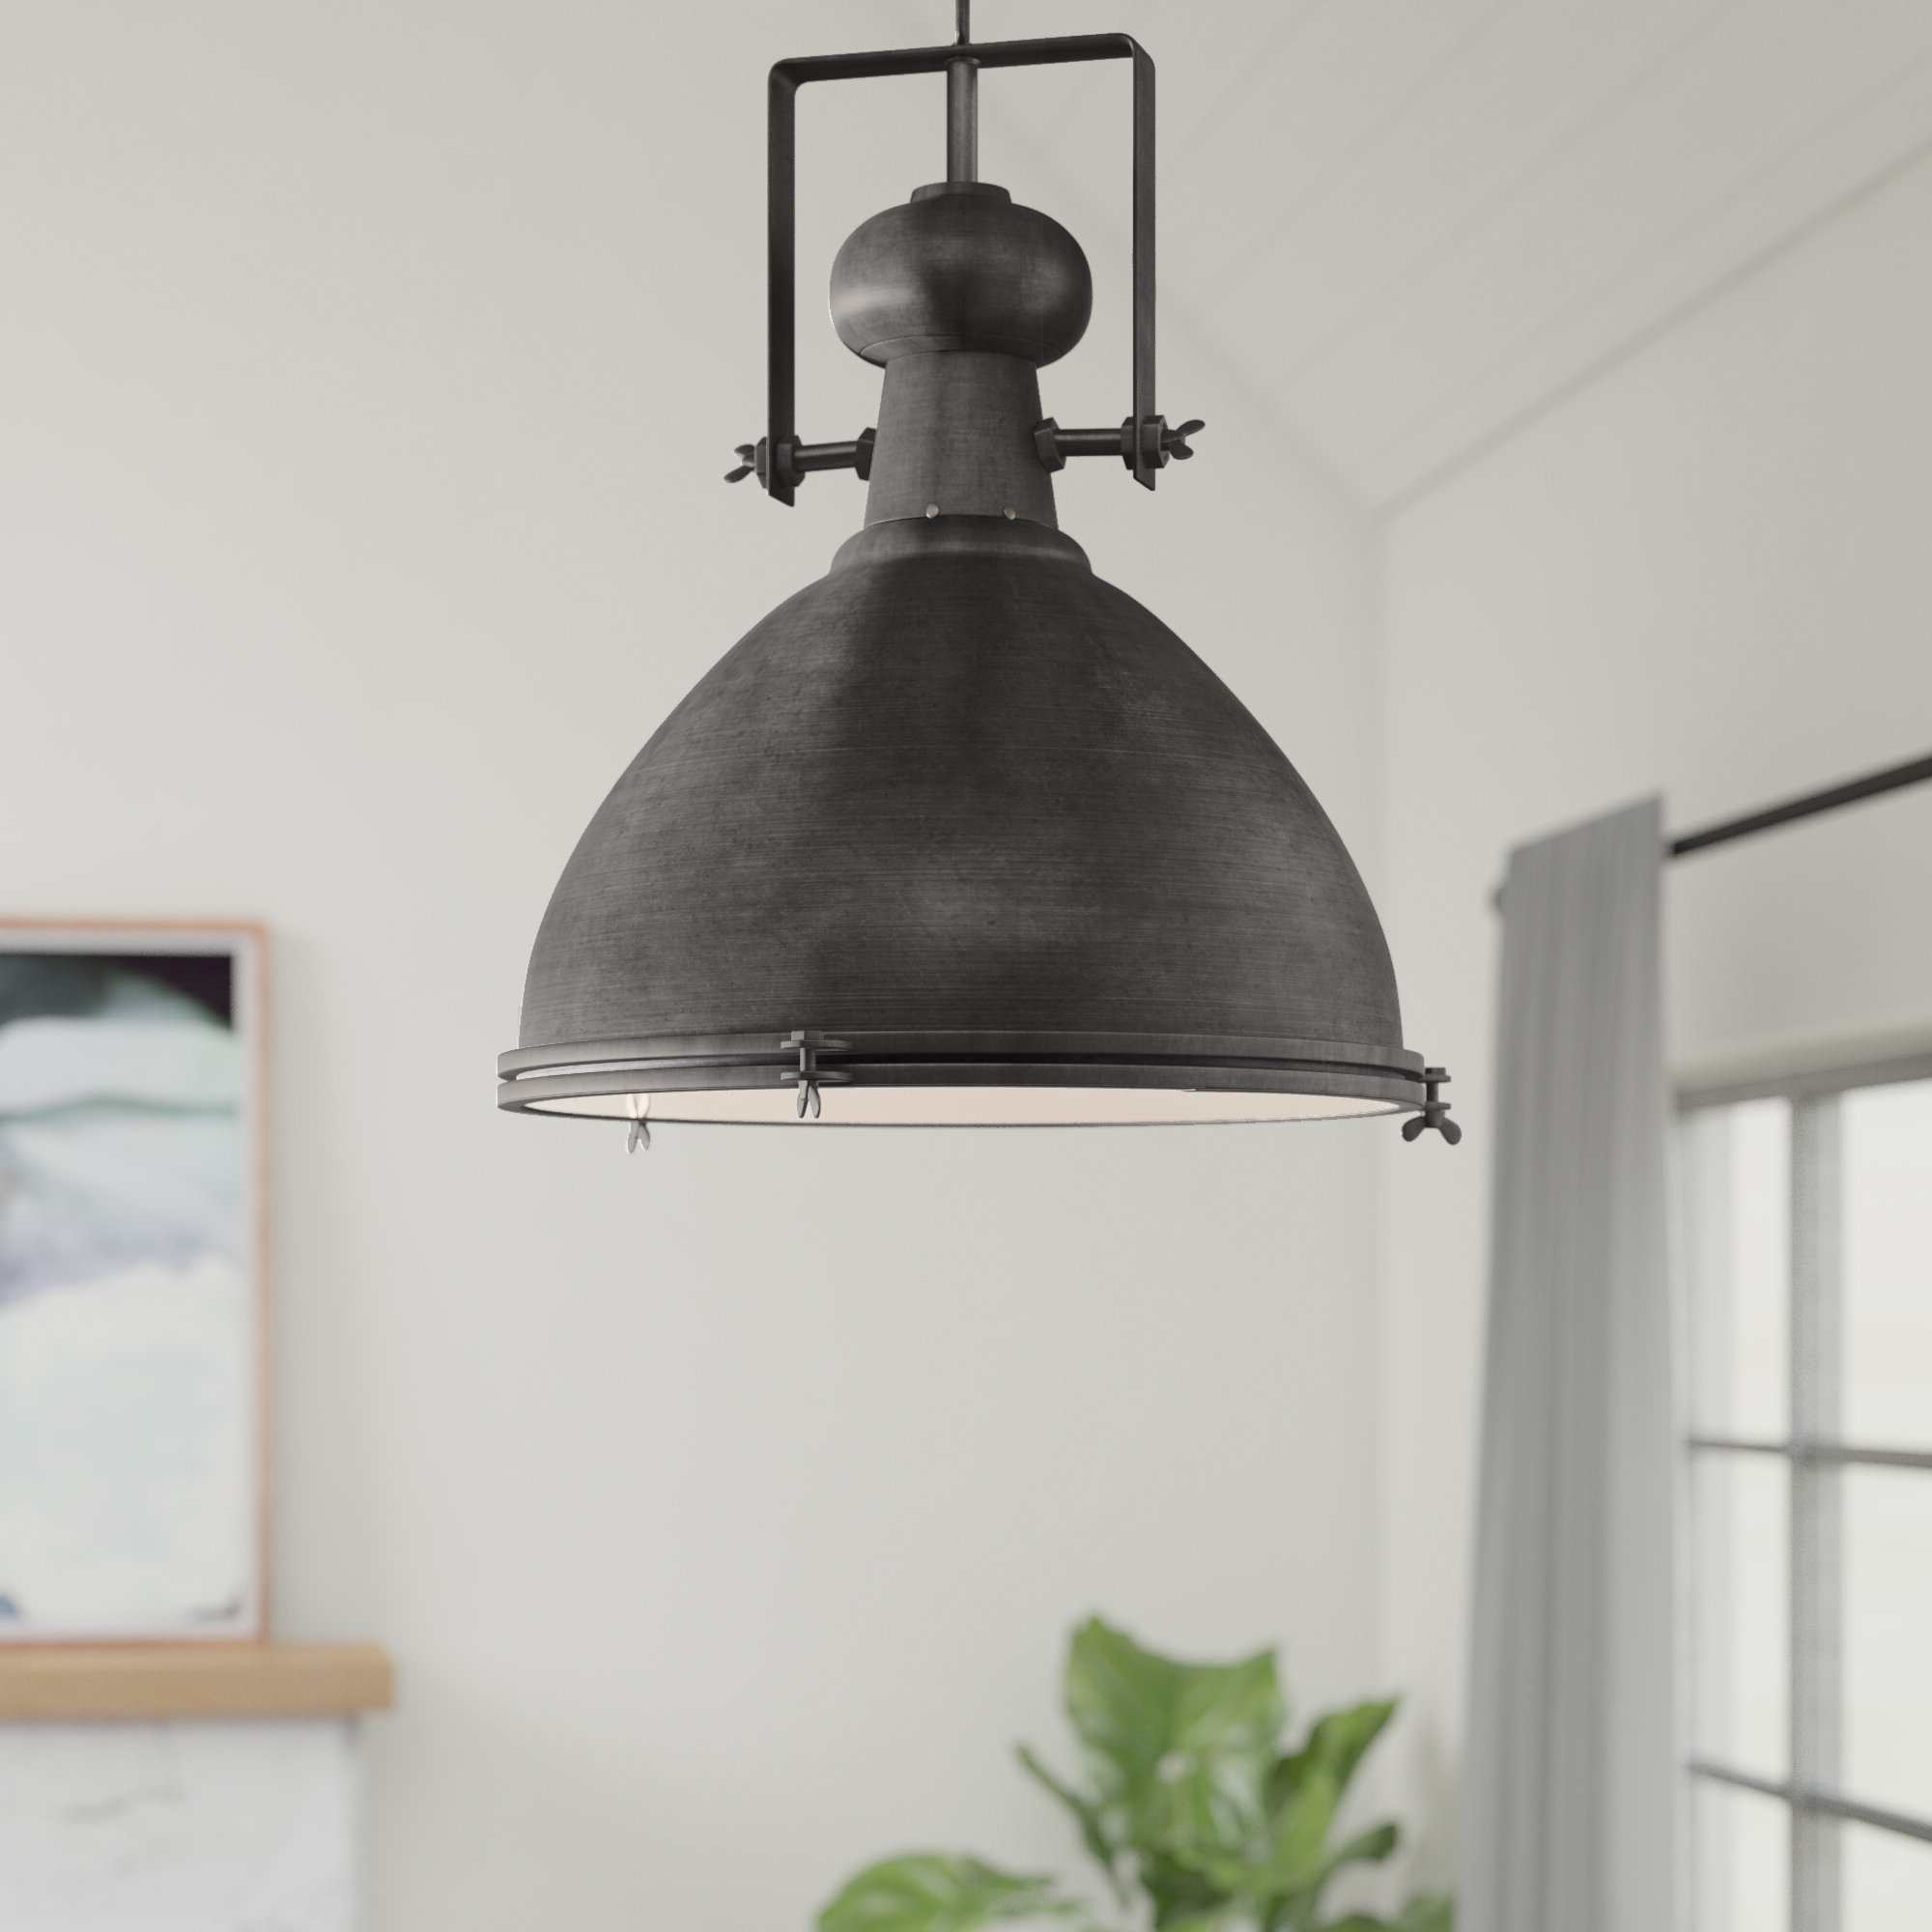 17 Stories Lavern 1 Light Single Dome Pendant Pertaining To Newest Hamilton 1 Light Single Dome Pendants (Gallery 3 of 20)